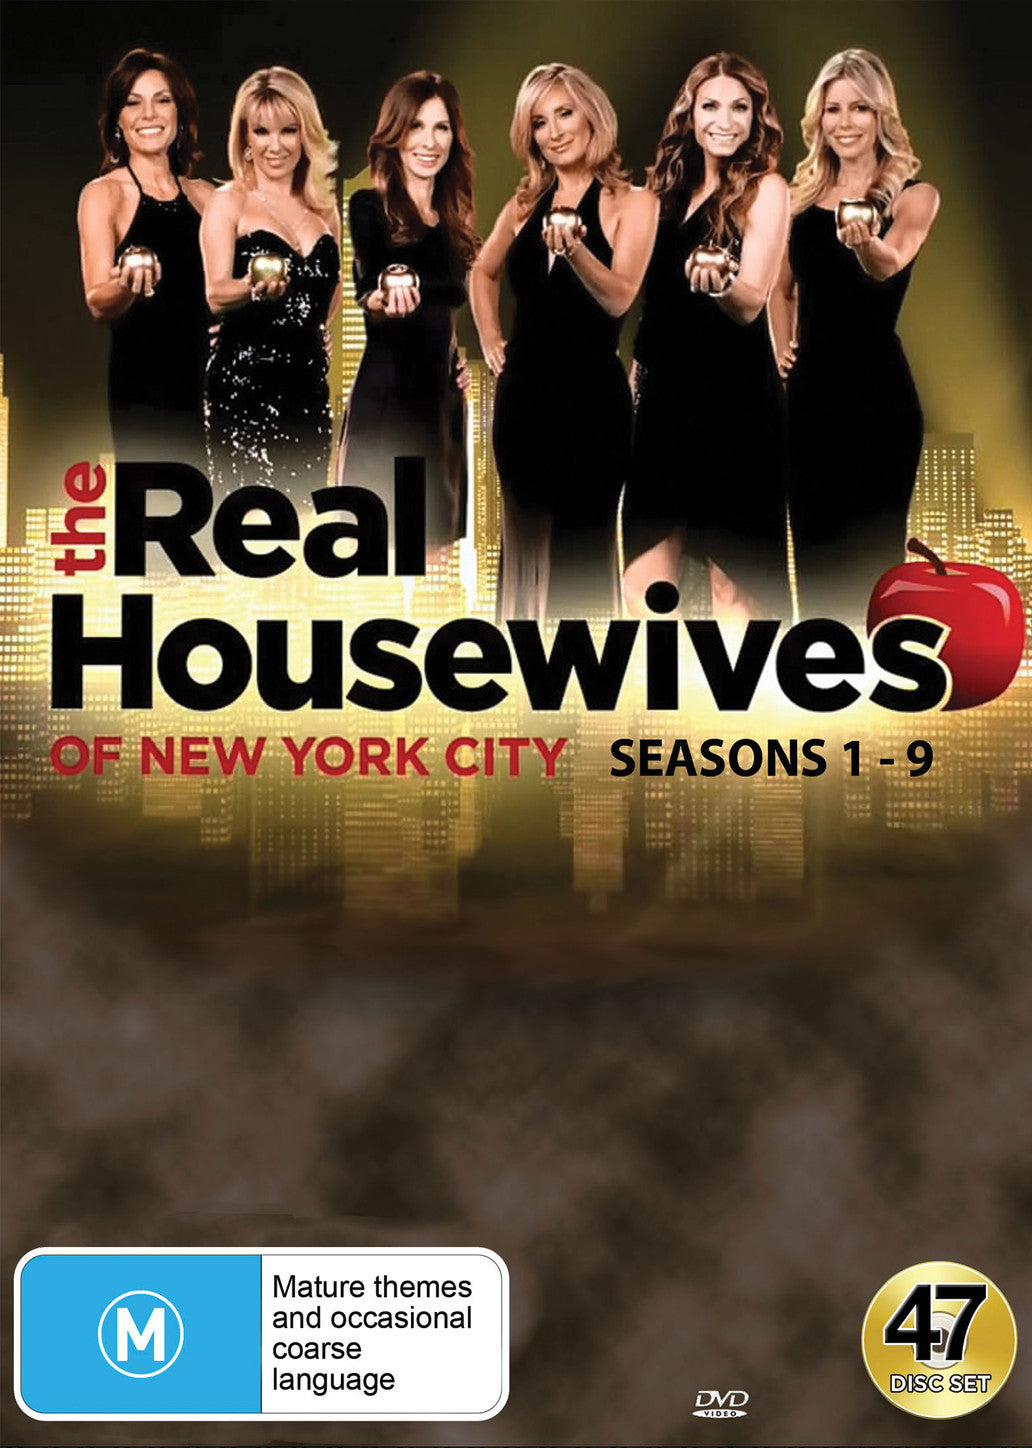 The Real Housewives of New York City (Seasons 1 - 9) DVD